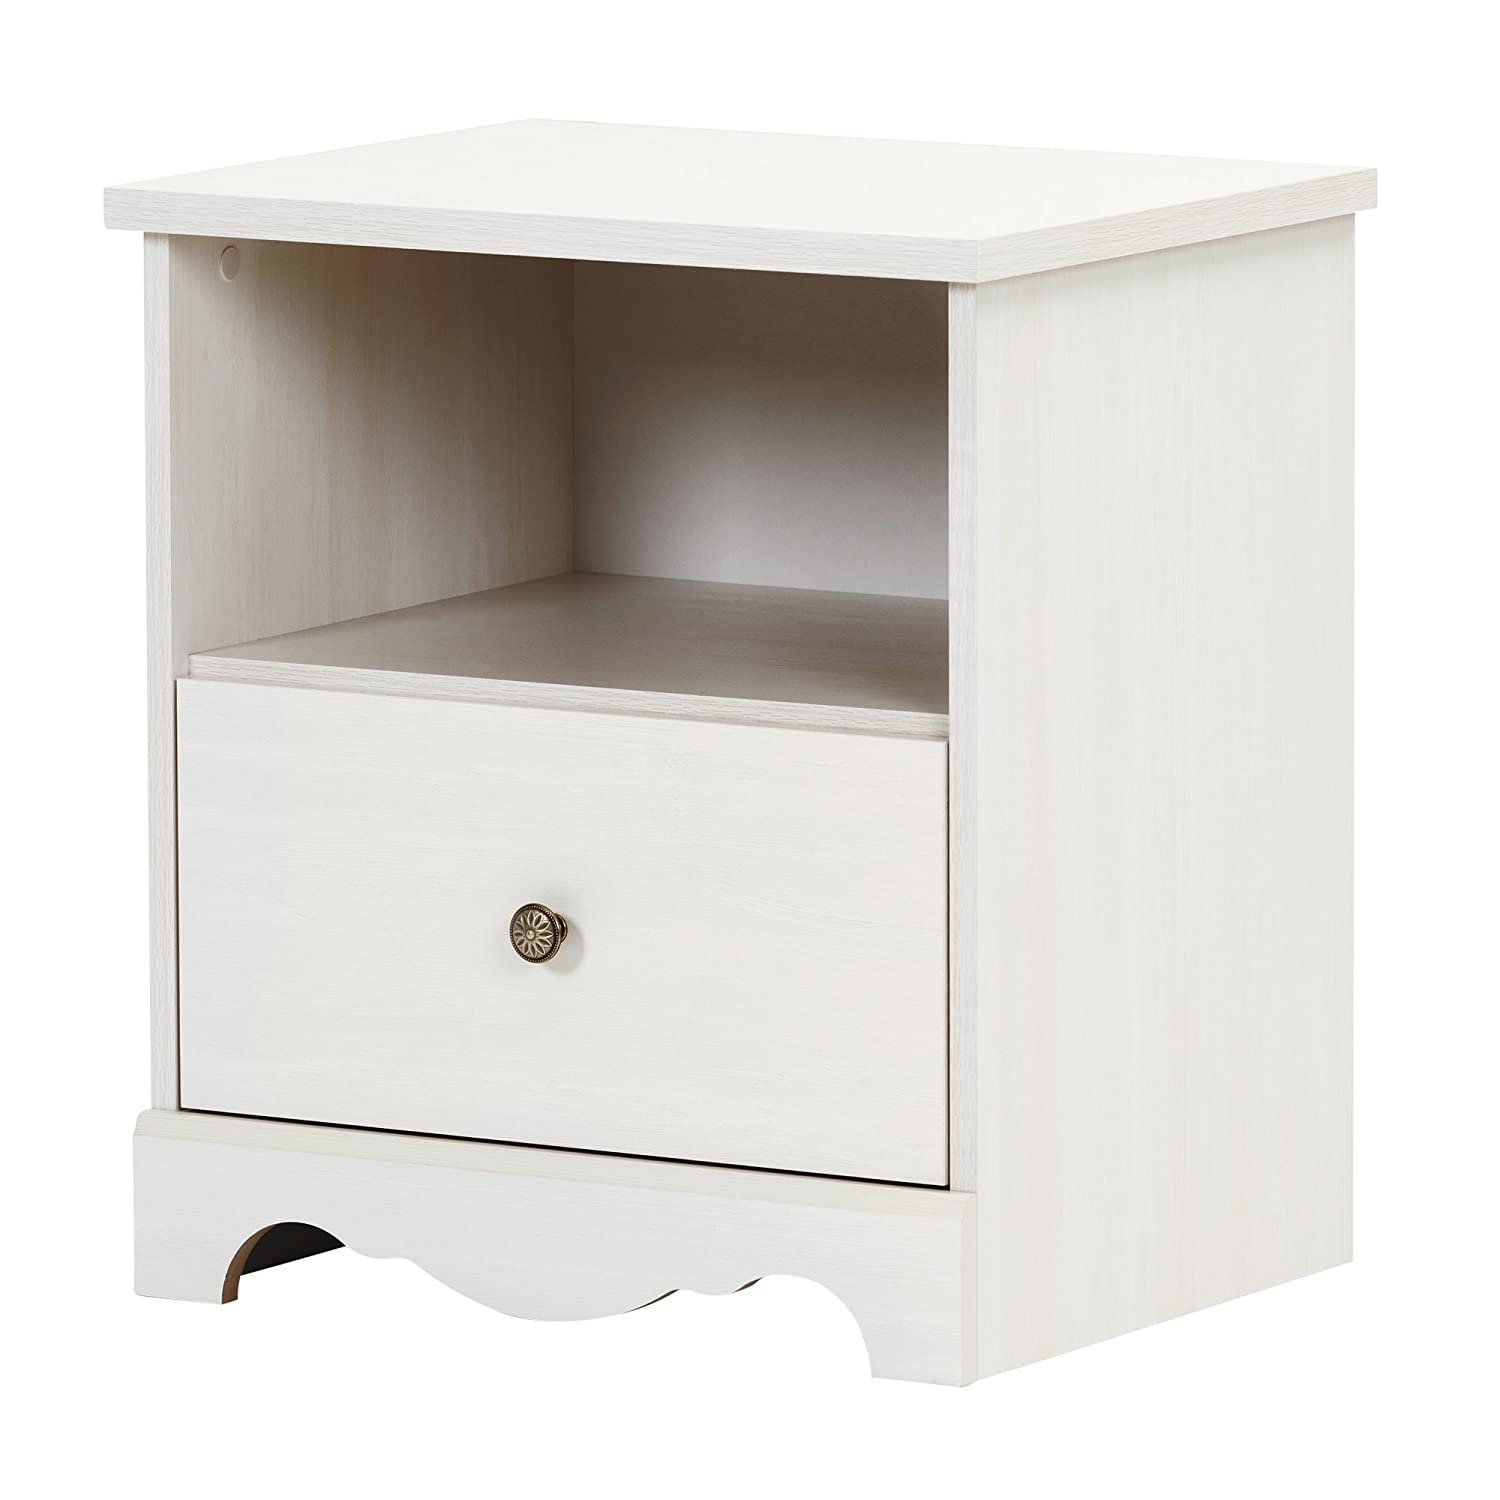 South Shore Caravell 1-Drawer Nightstand, White Wash 10300